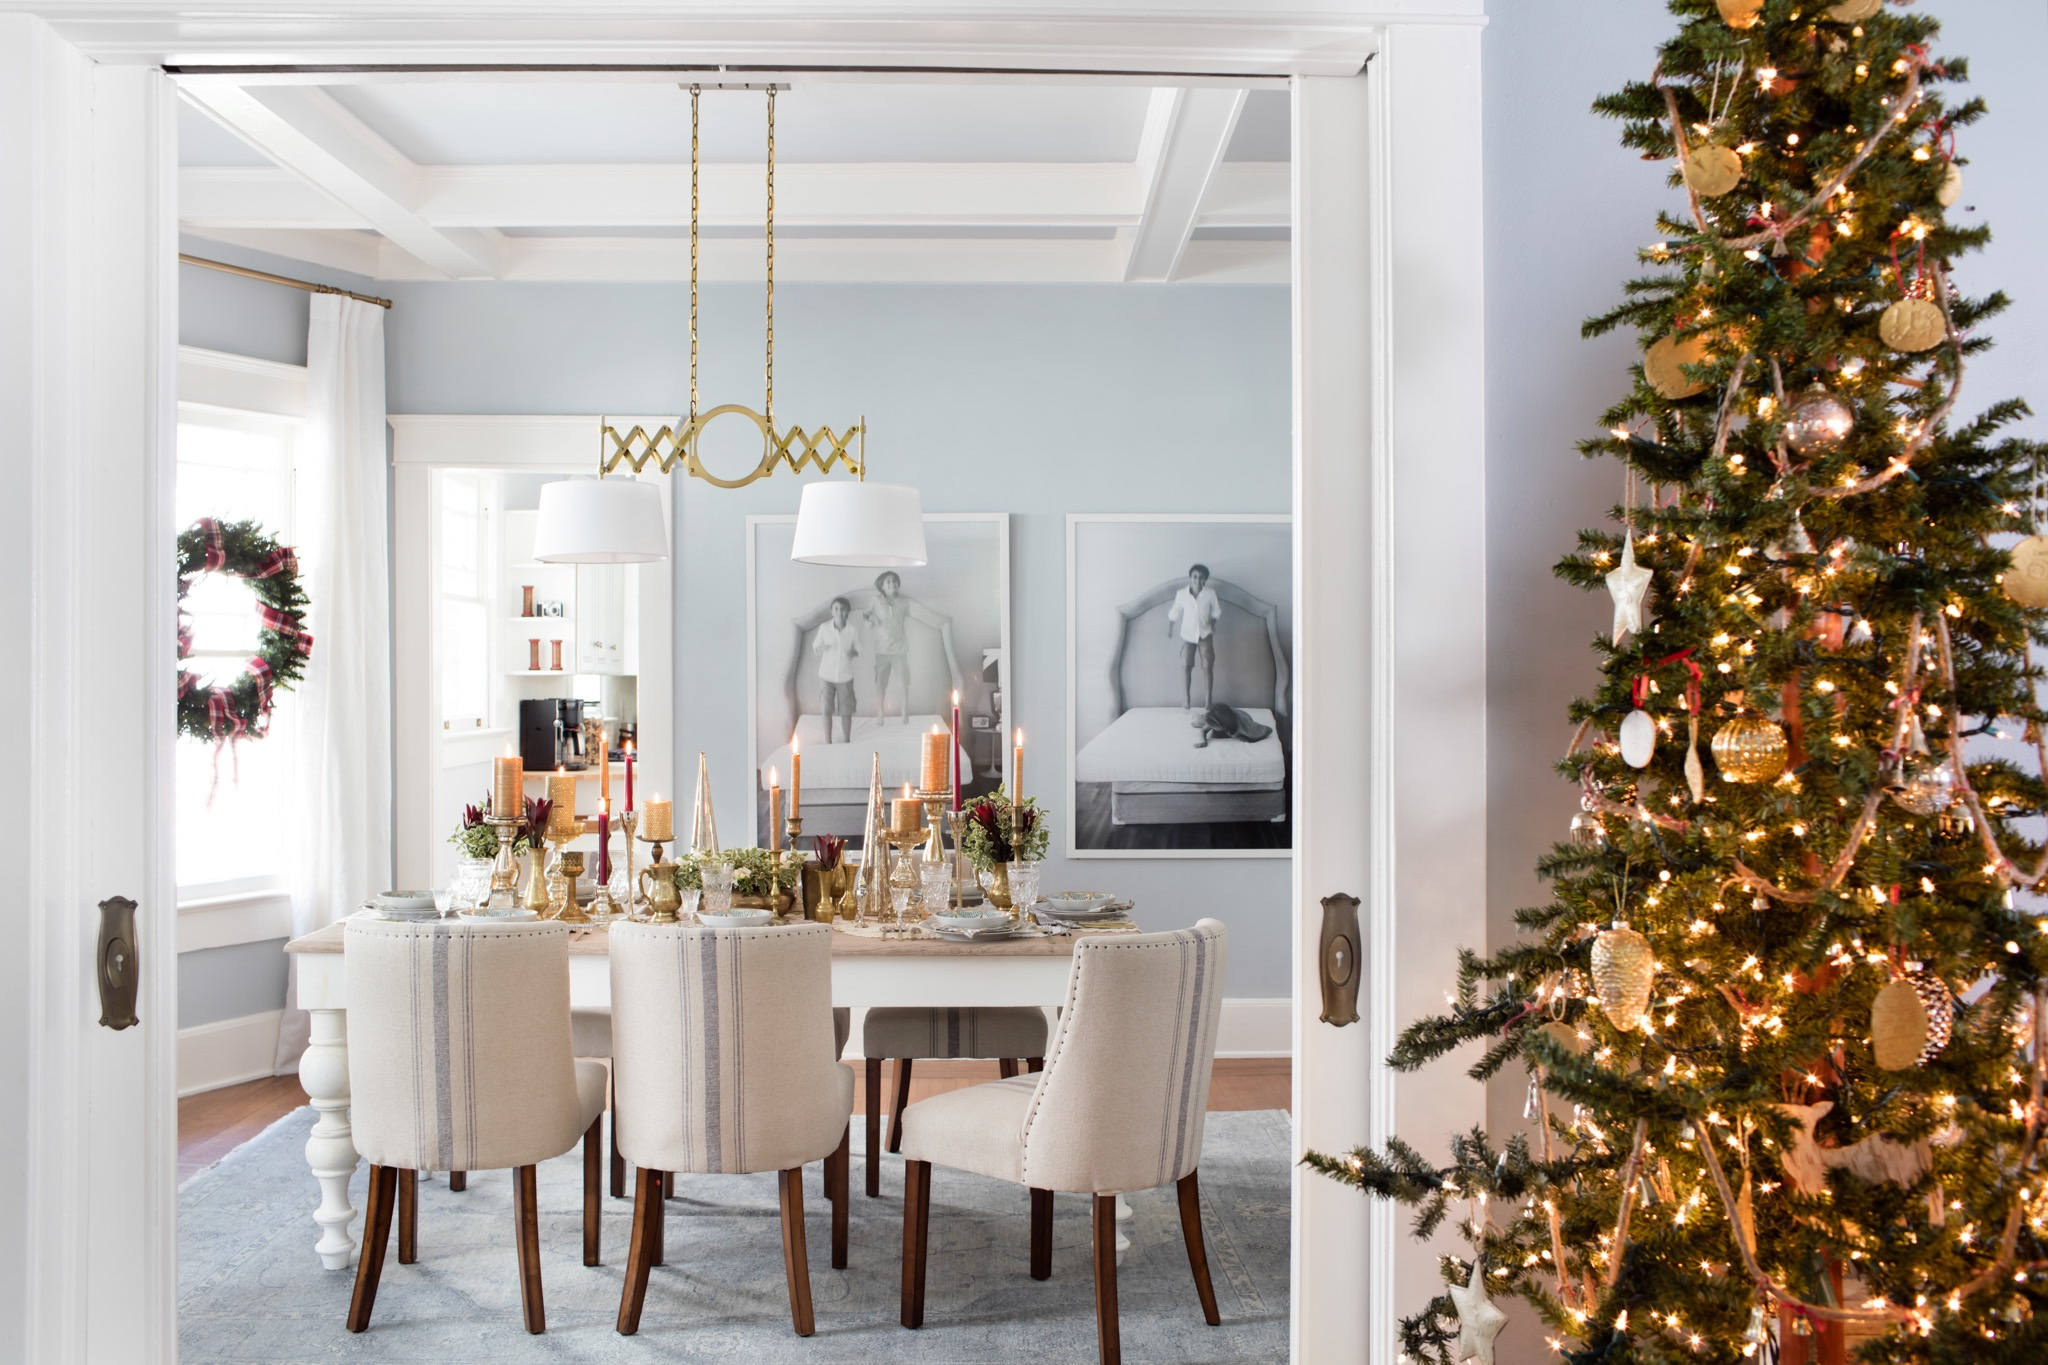 Festive Dining Room With Christmas Tree And Industrial Style Chandelier (Photo 16 of 32)